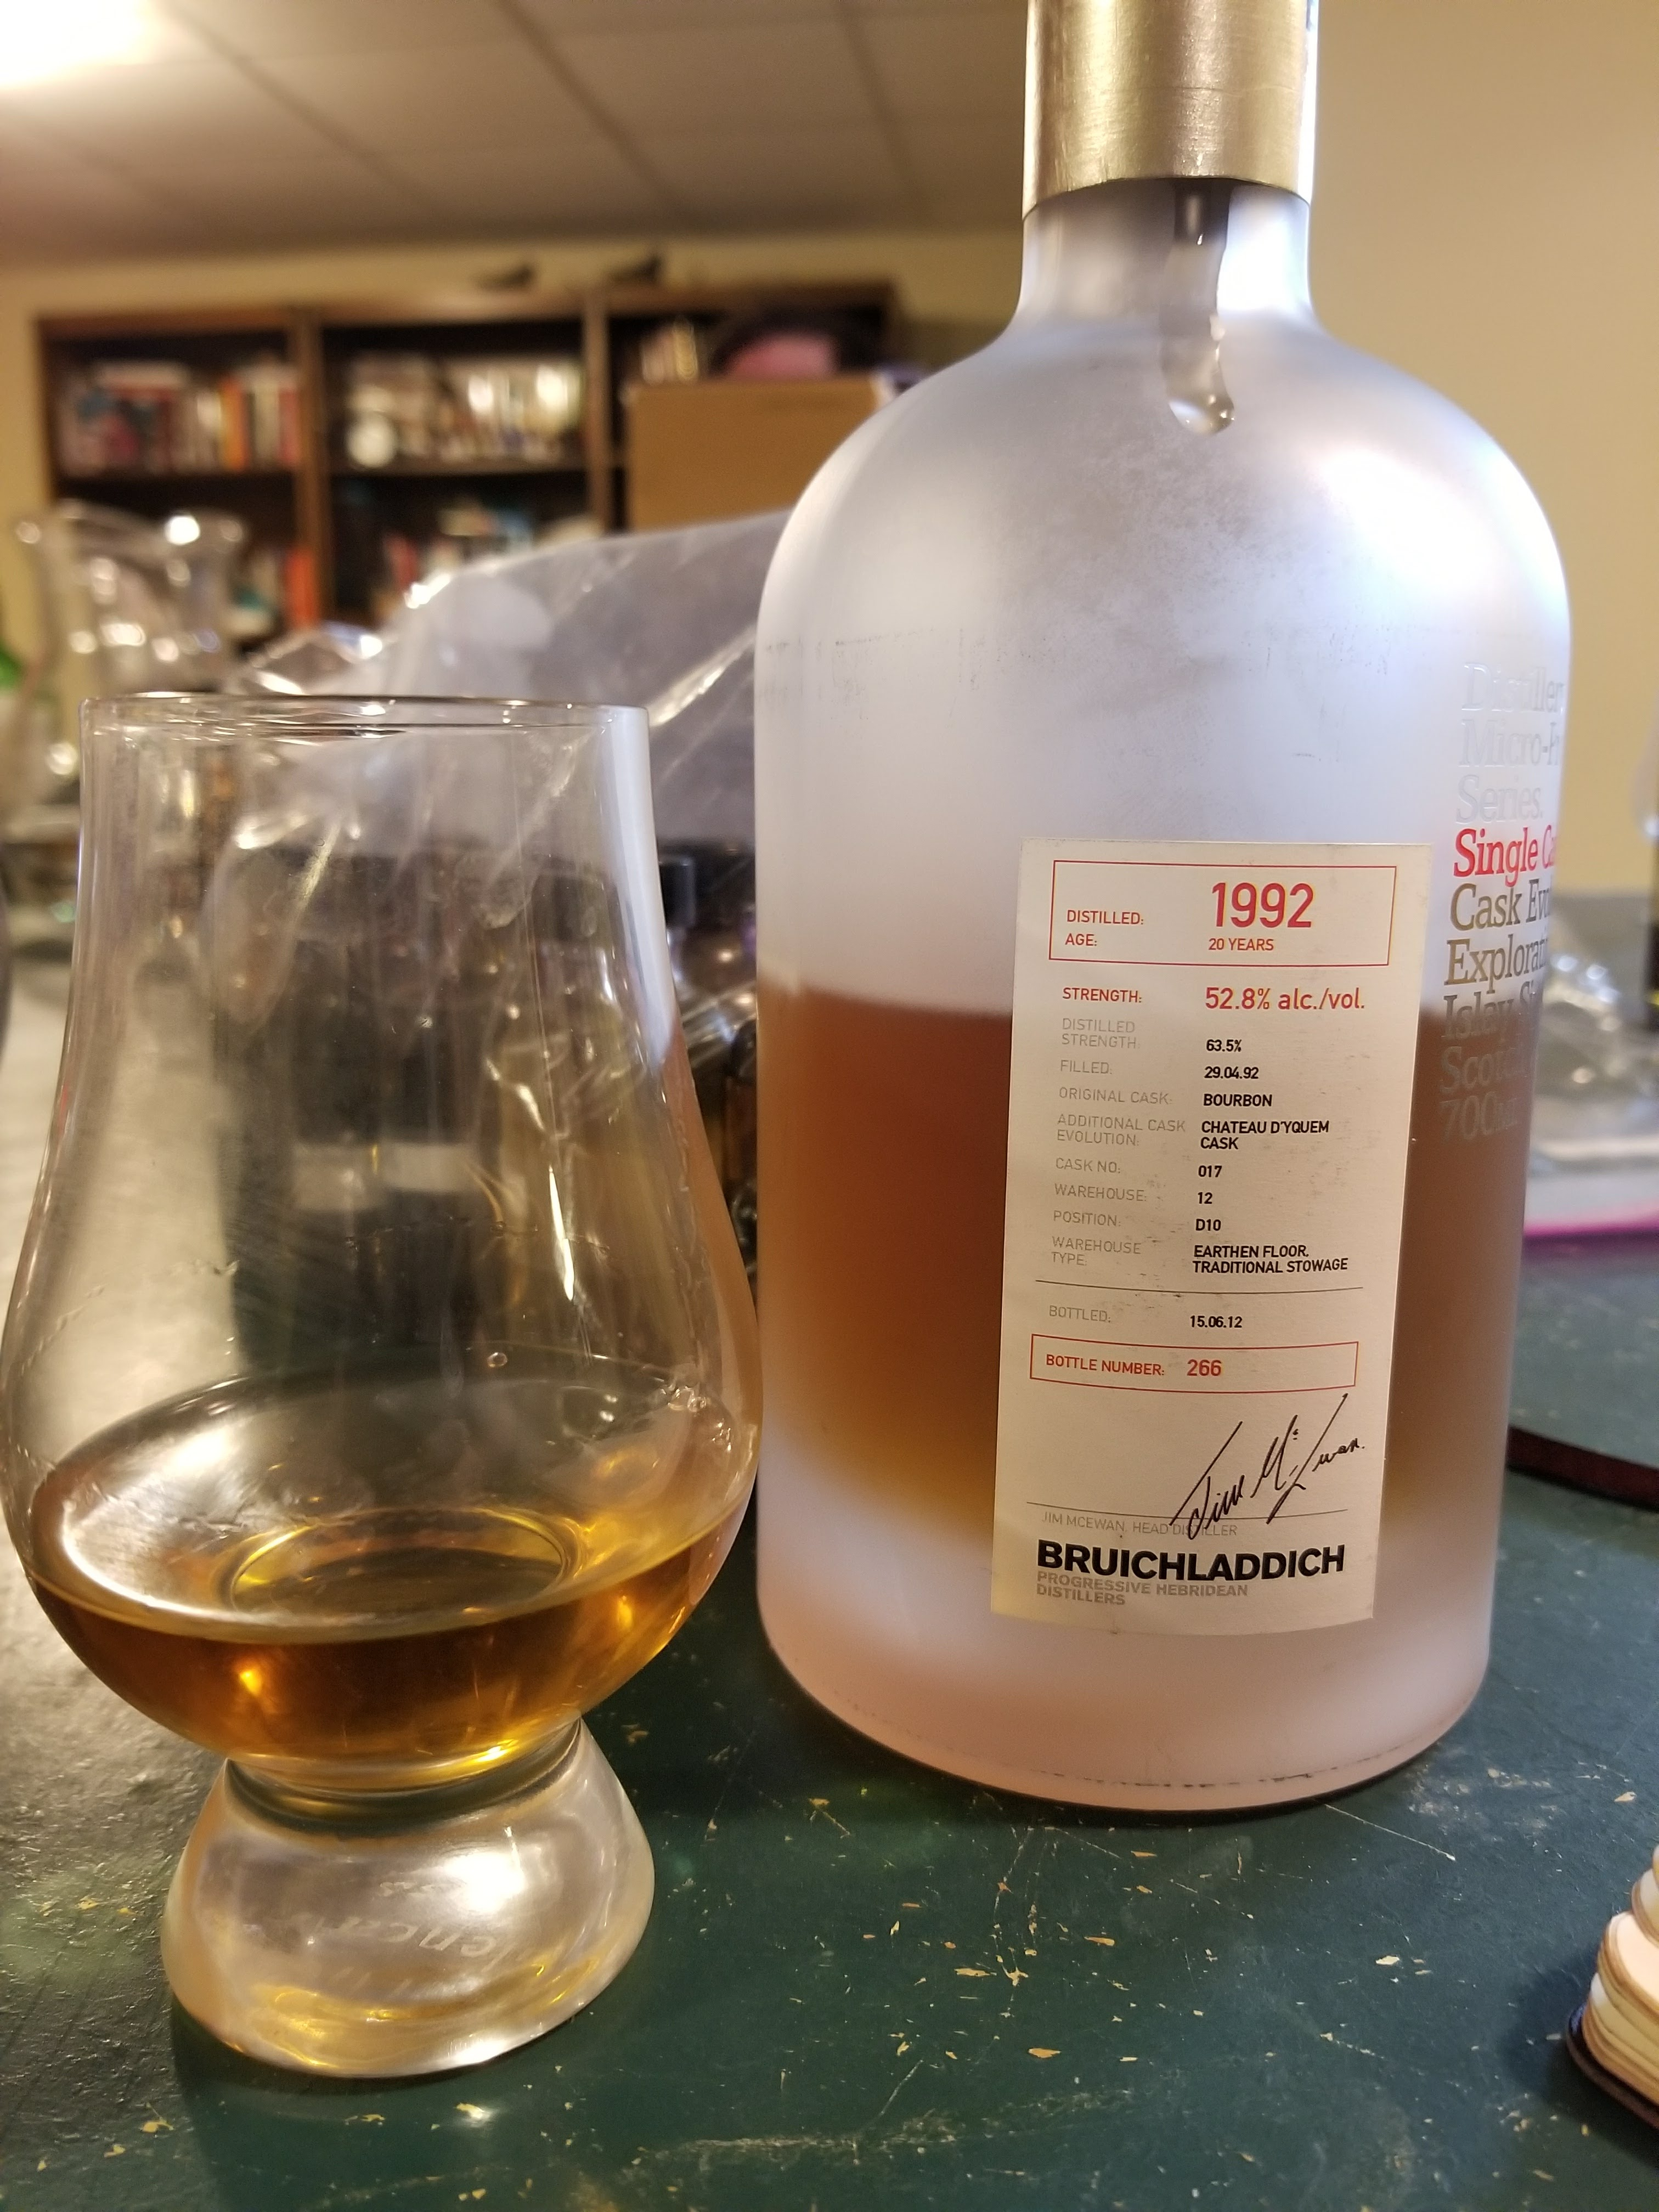 Bruichladdich 20 1992 Single Cask.jpg